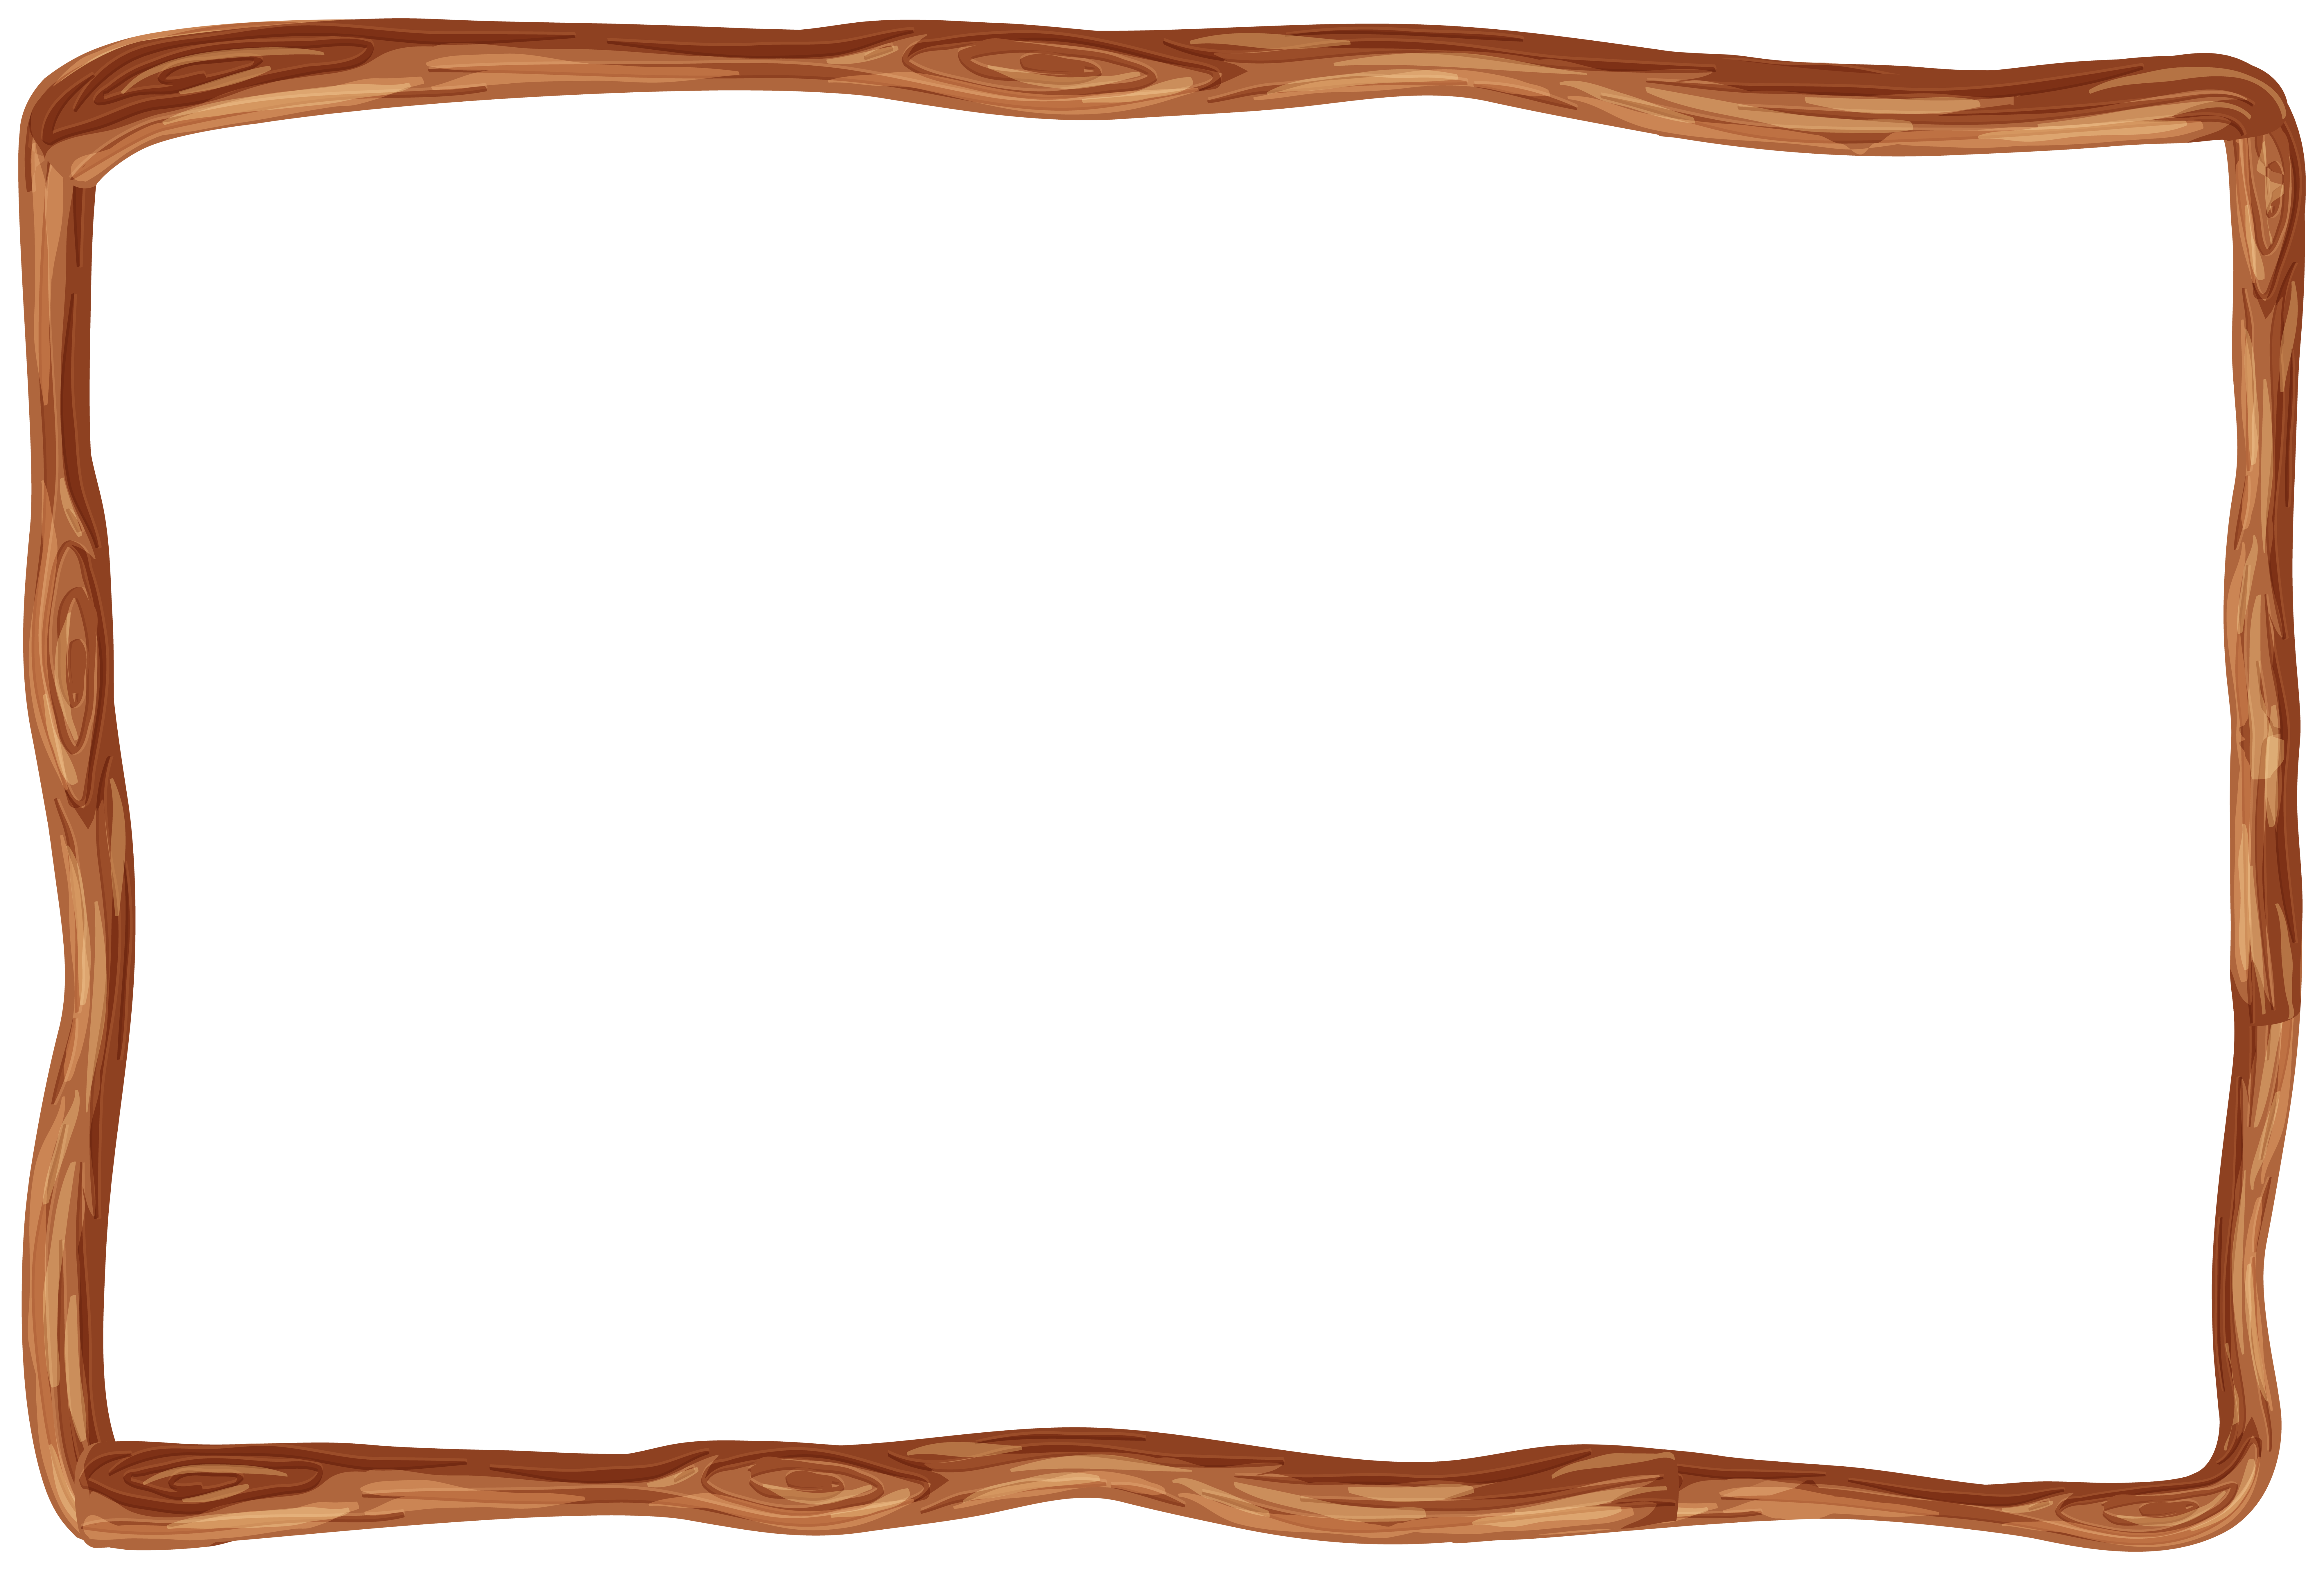 Boarder clipart wood. Wooden frame border png